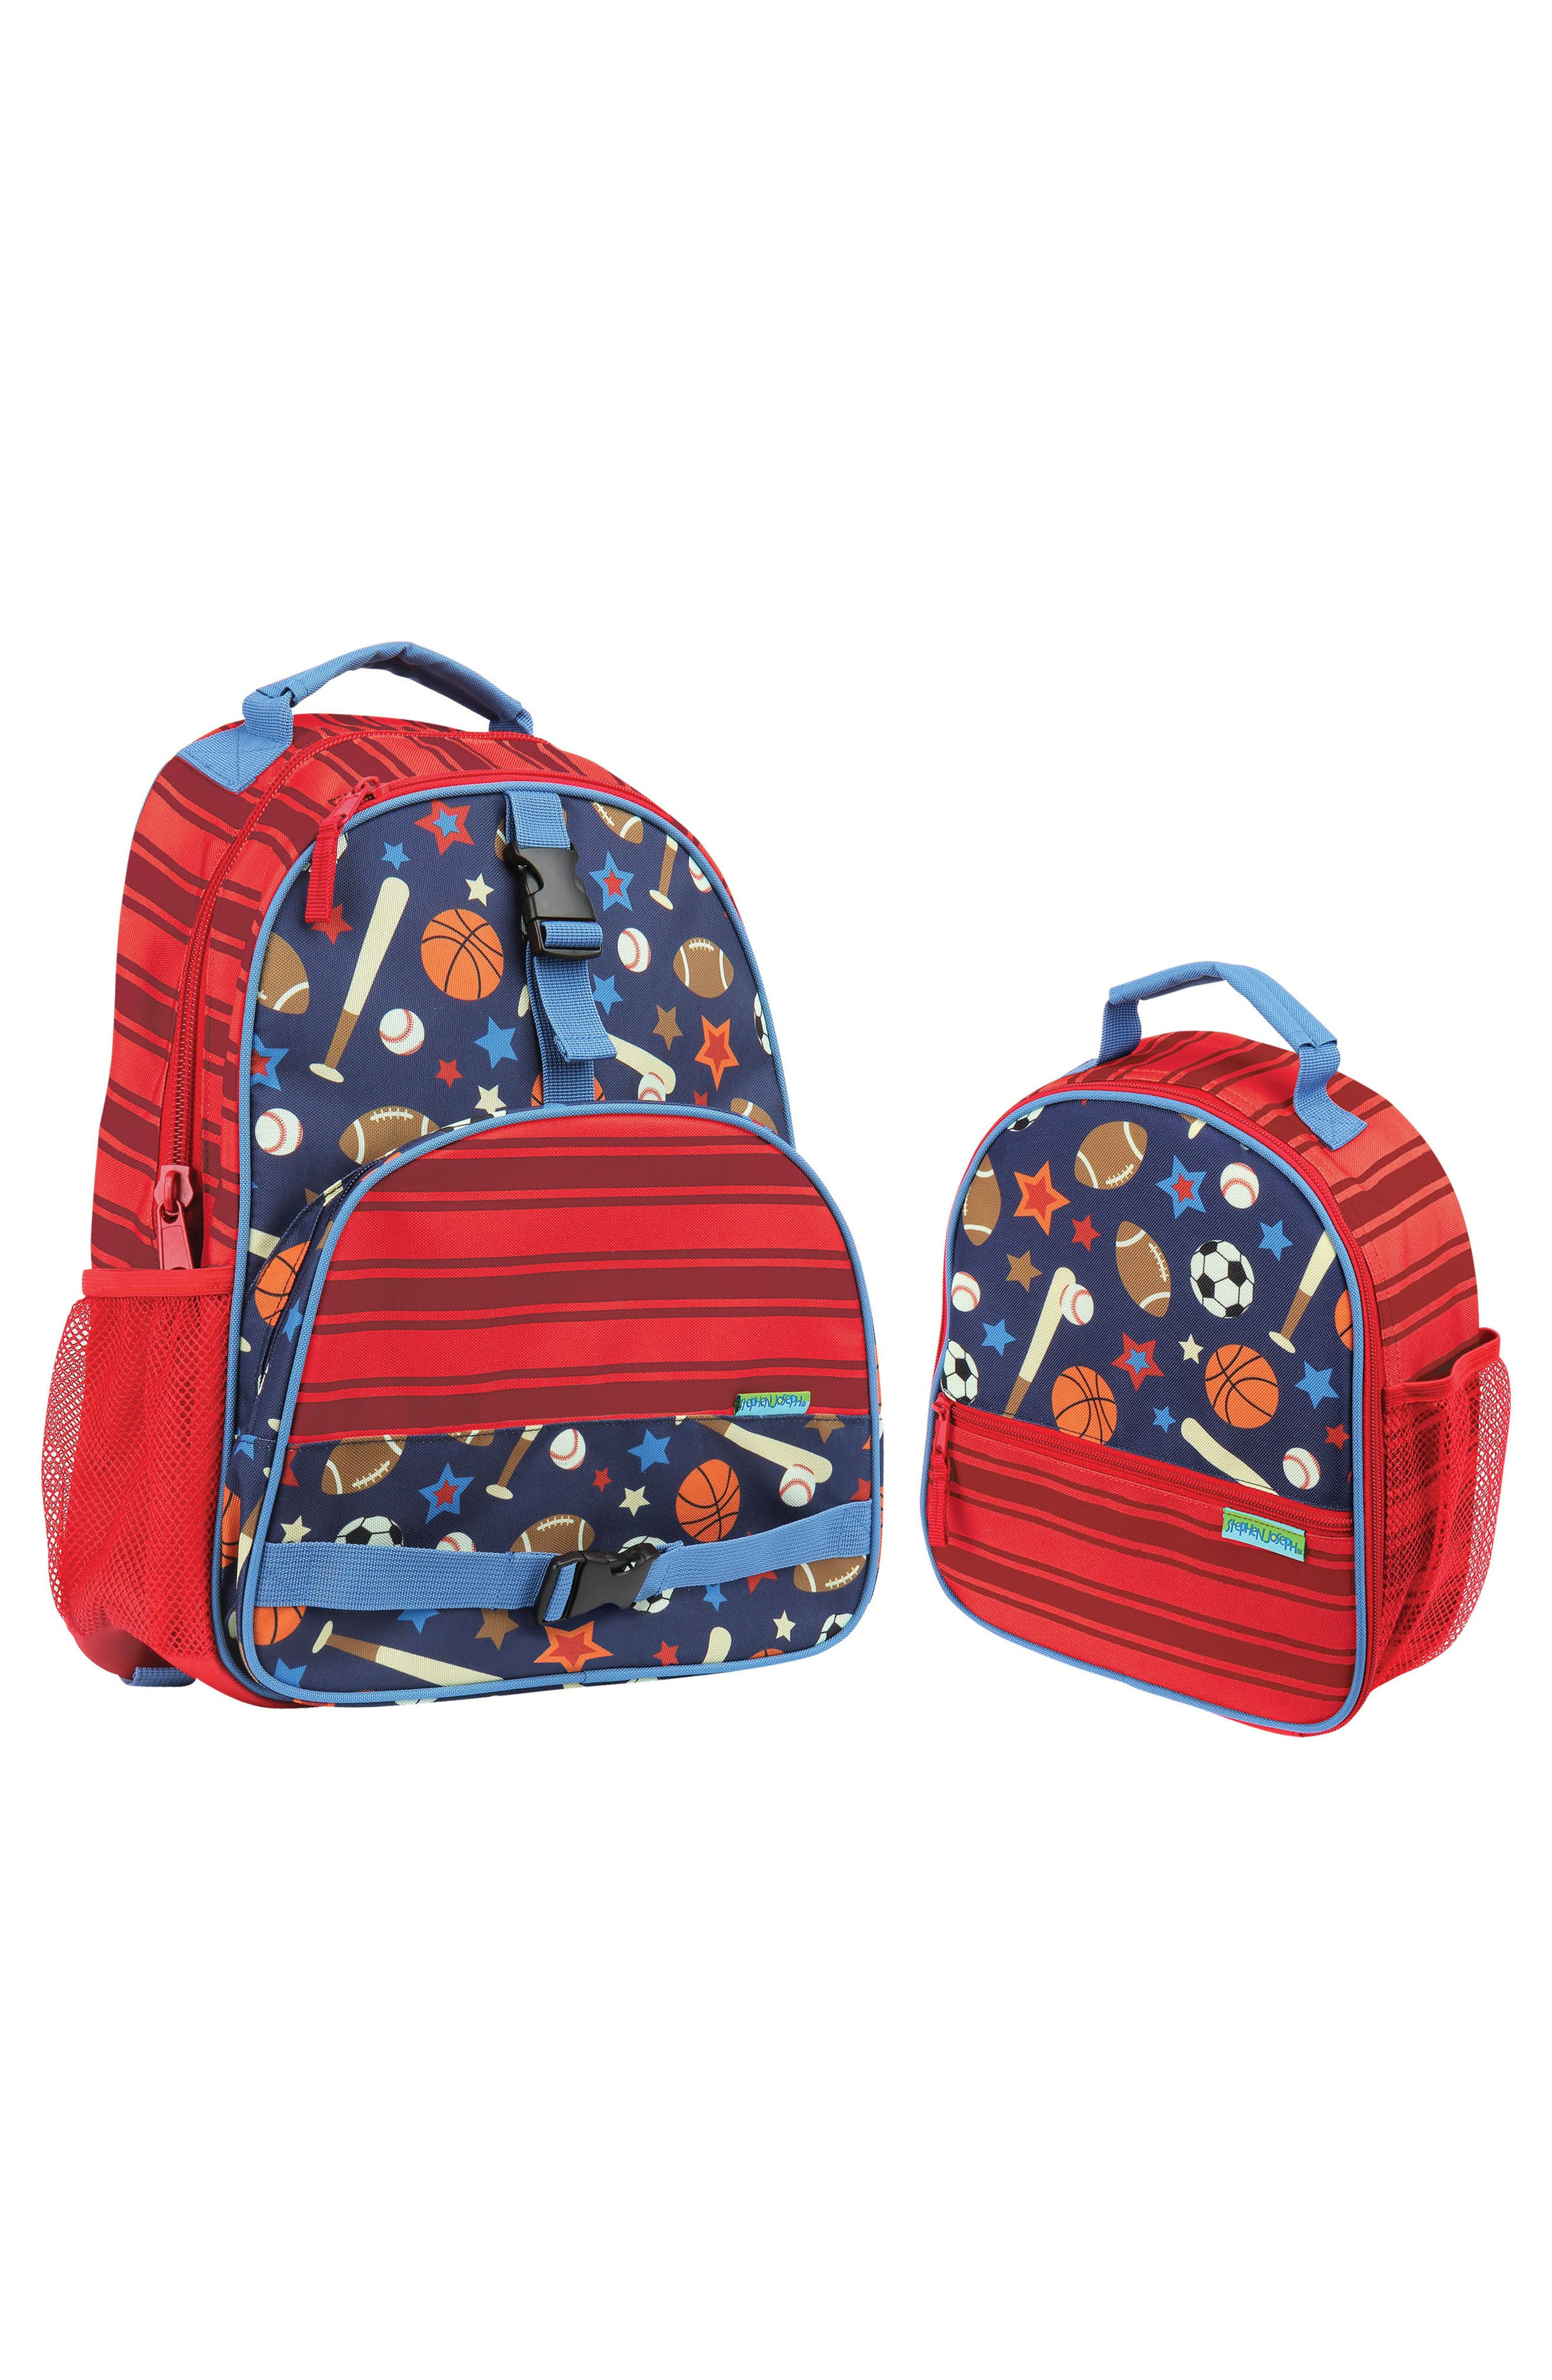 STEPHEN JOSEPH Sports Backpack & Lunchbox, Main, color, SPORTS